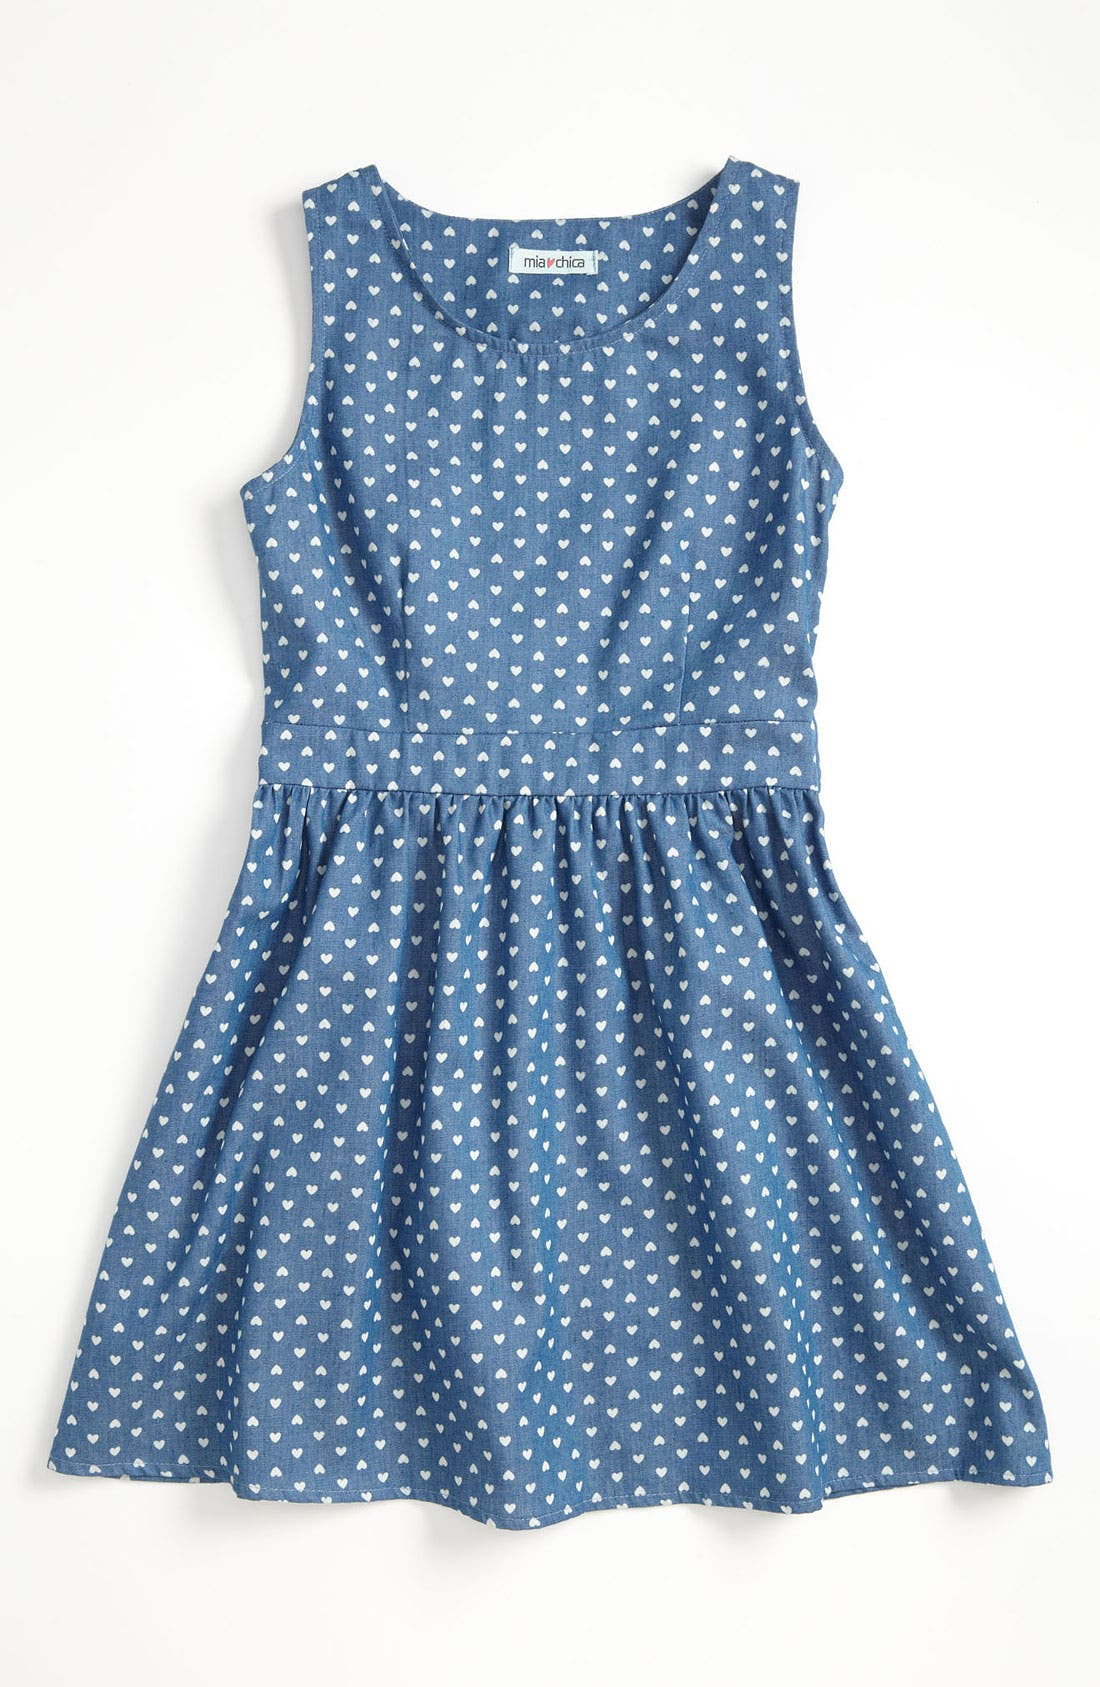 Alternate Image 1 Selected - Mia Chica Chambray Dress (Little Girls & Big Girls)